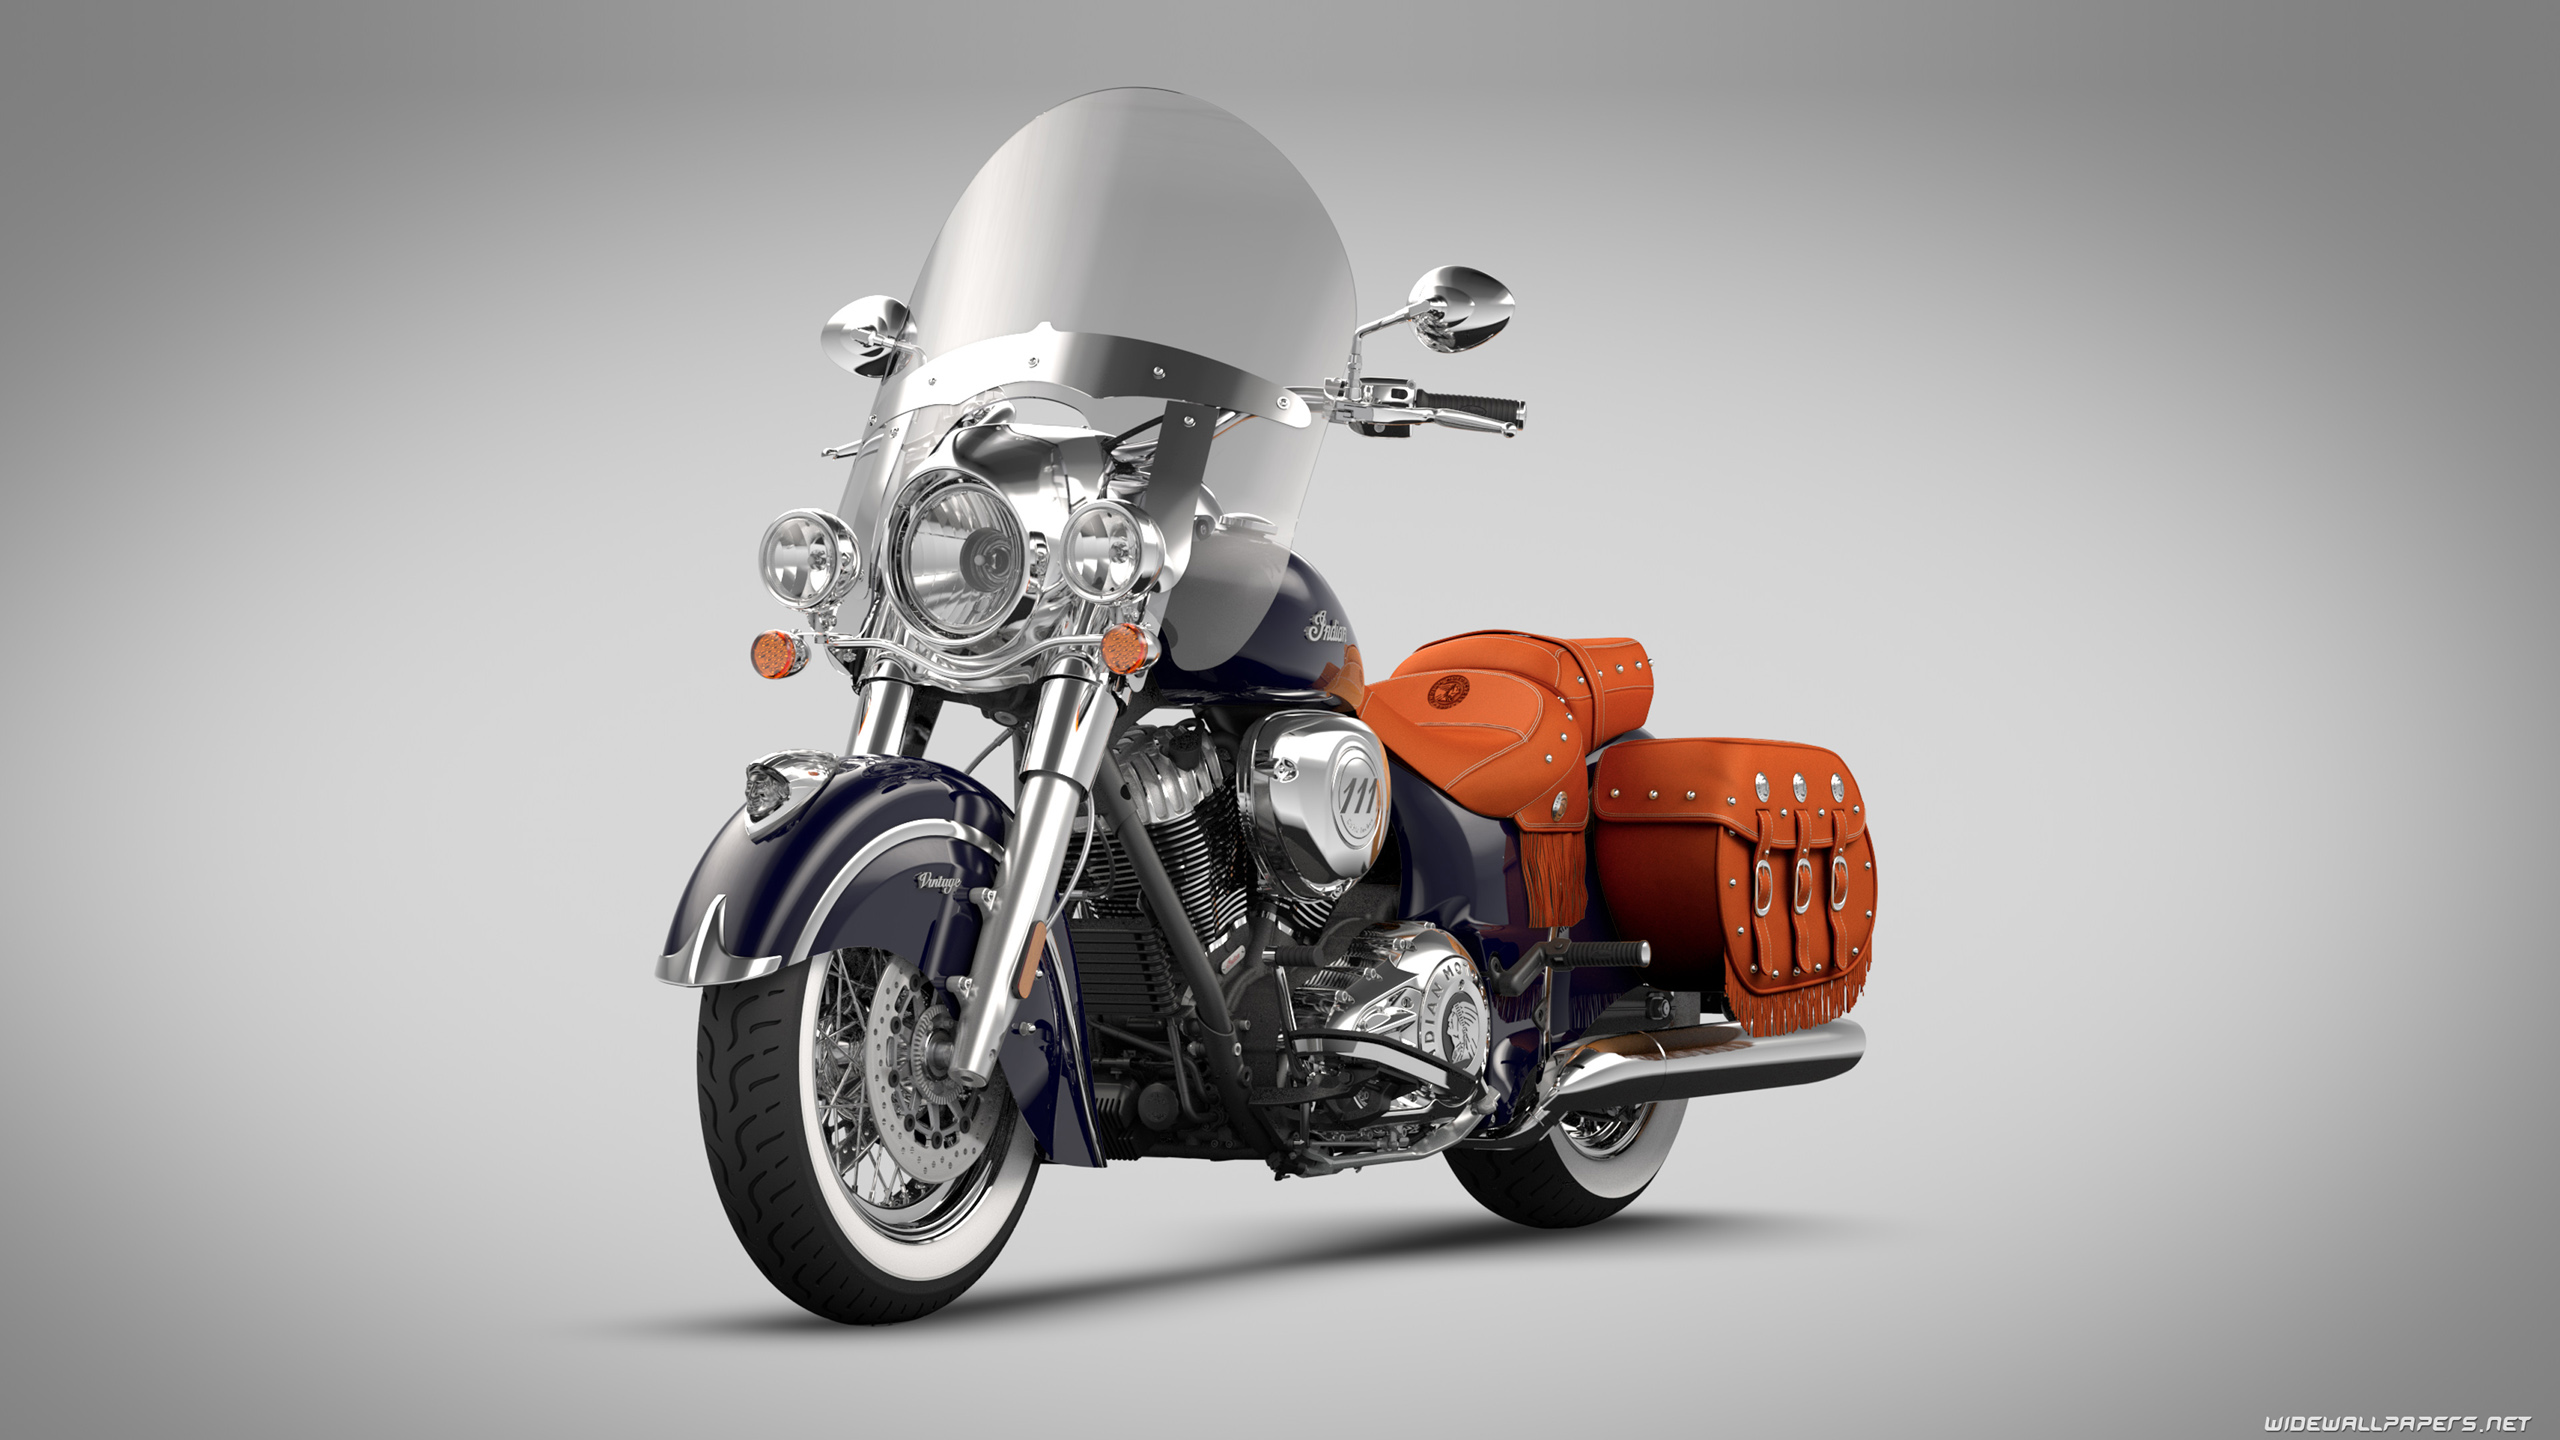 Indian Motorcycle Wallpapers - Wallpaper Cave